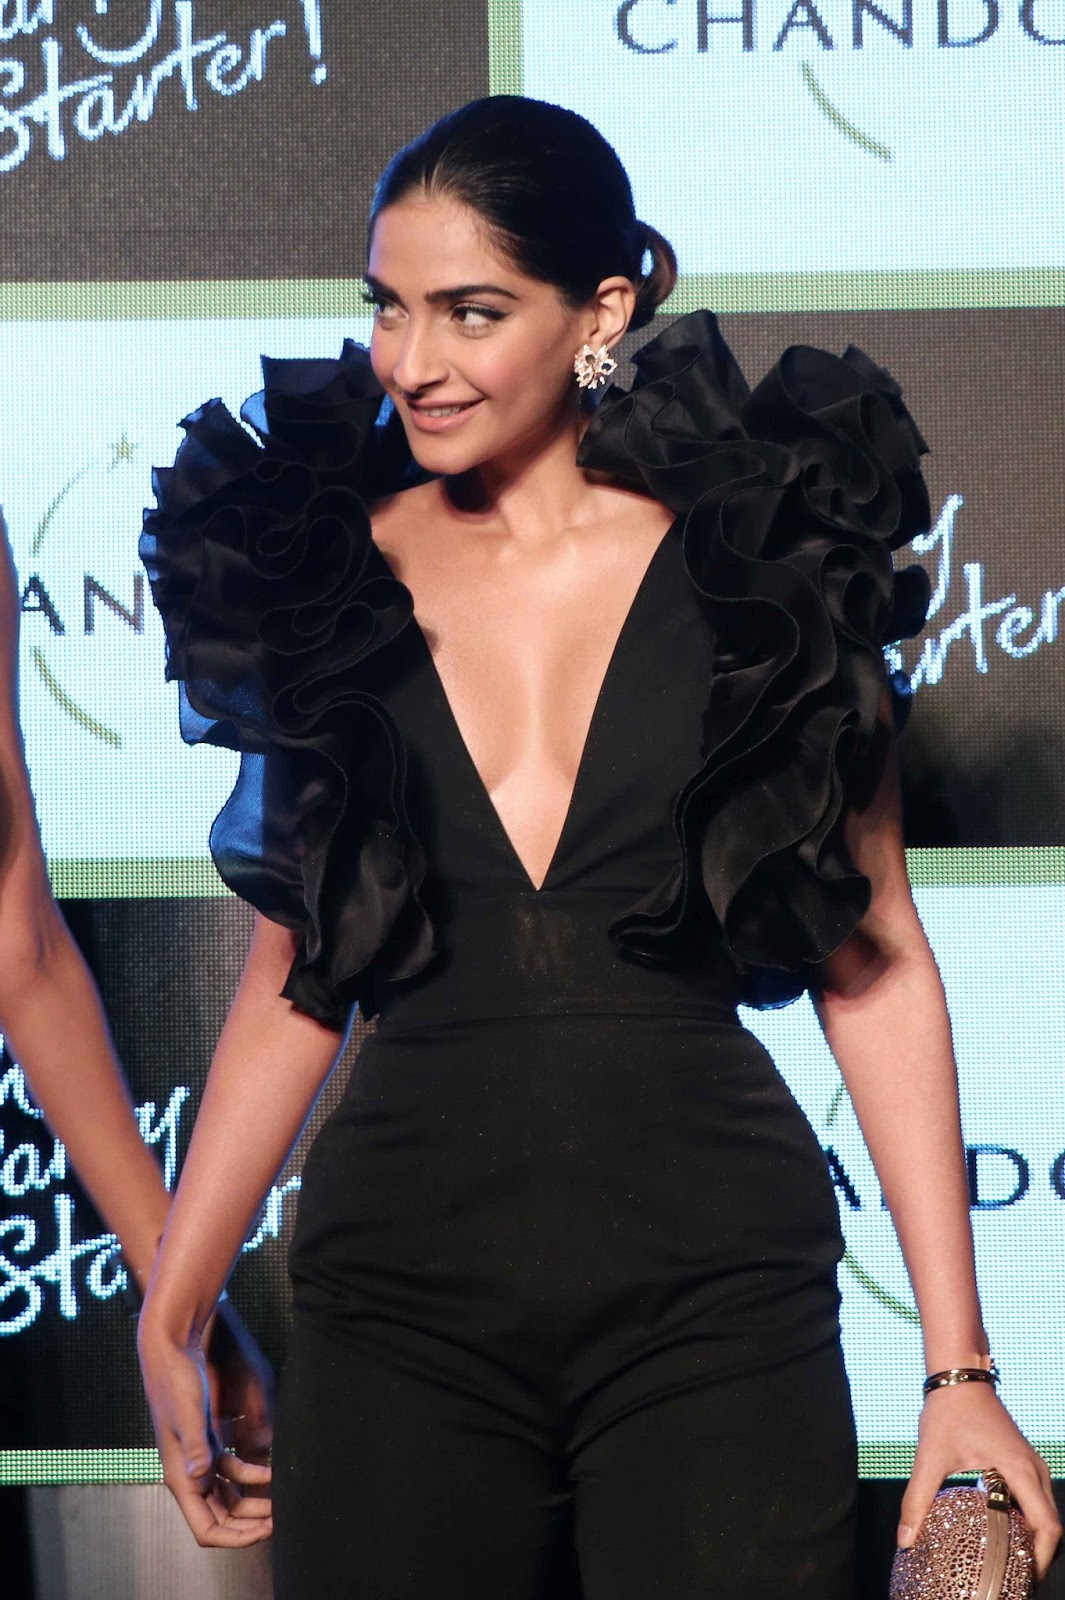 High Quality Bollywood Celebrity Pictures Sonam Kapoor -4048